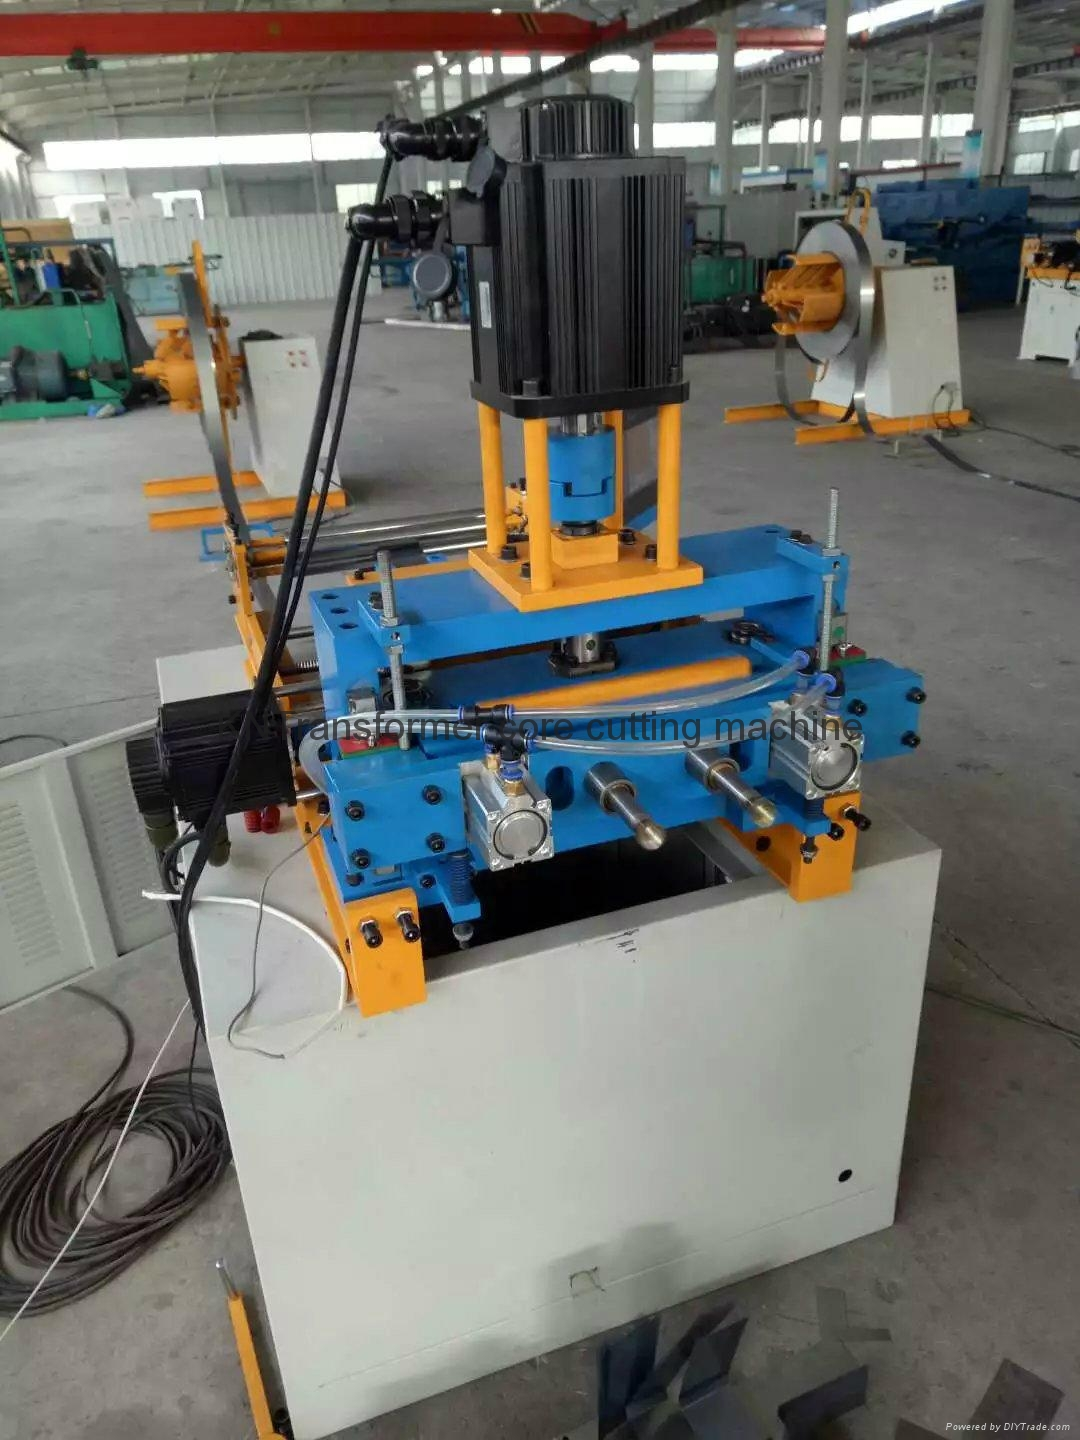 unicore cutting machine